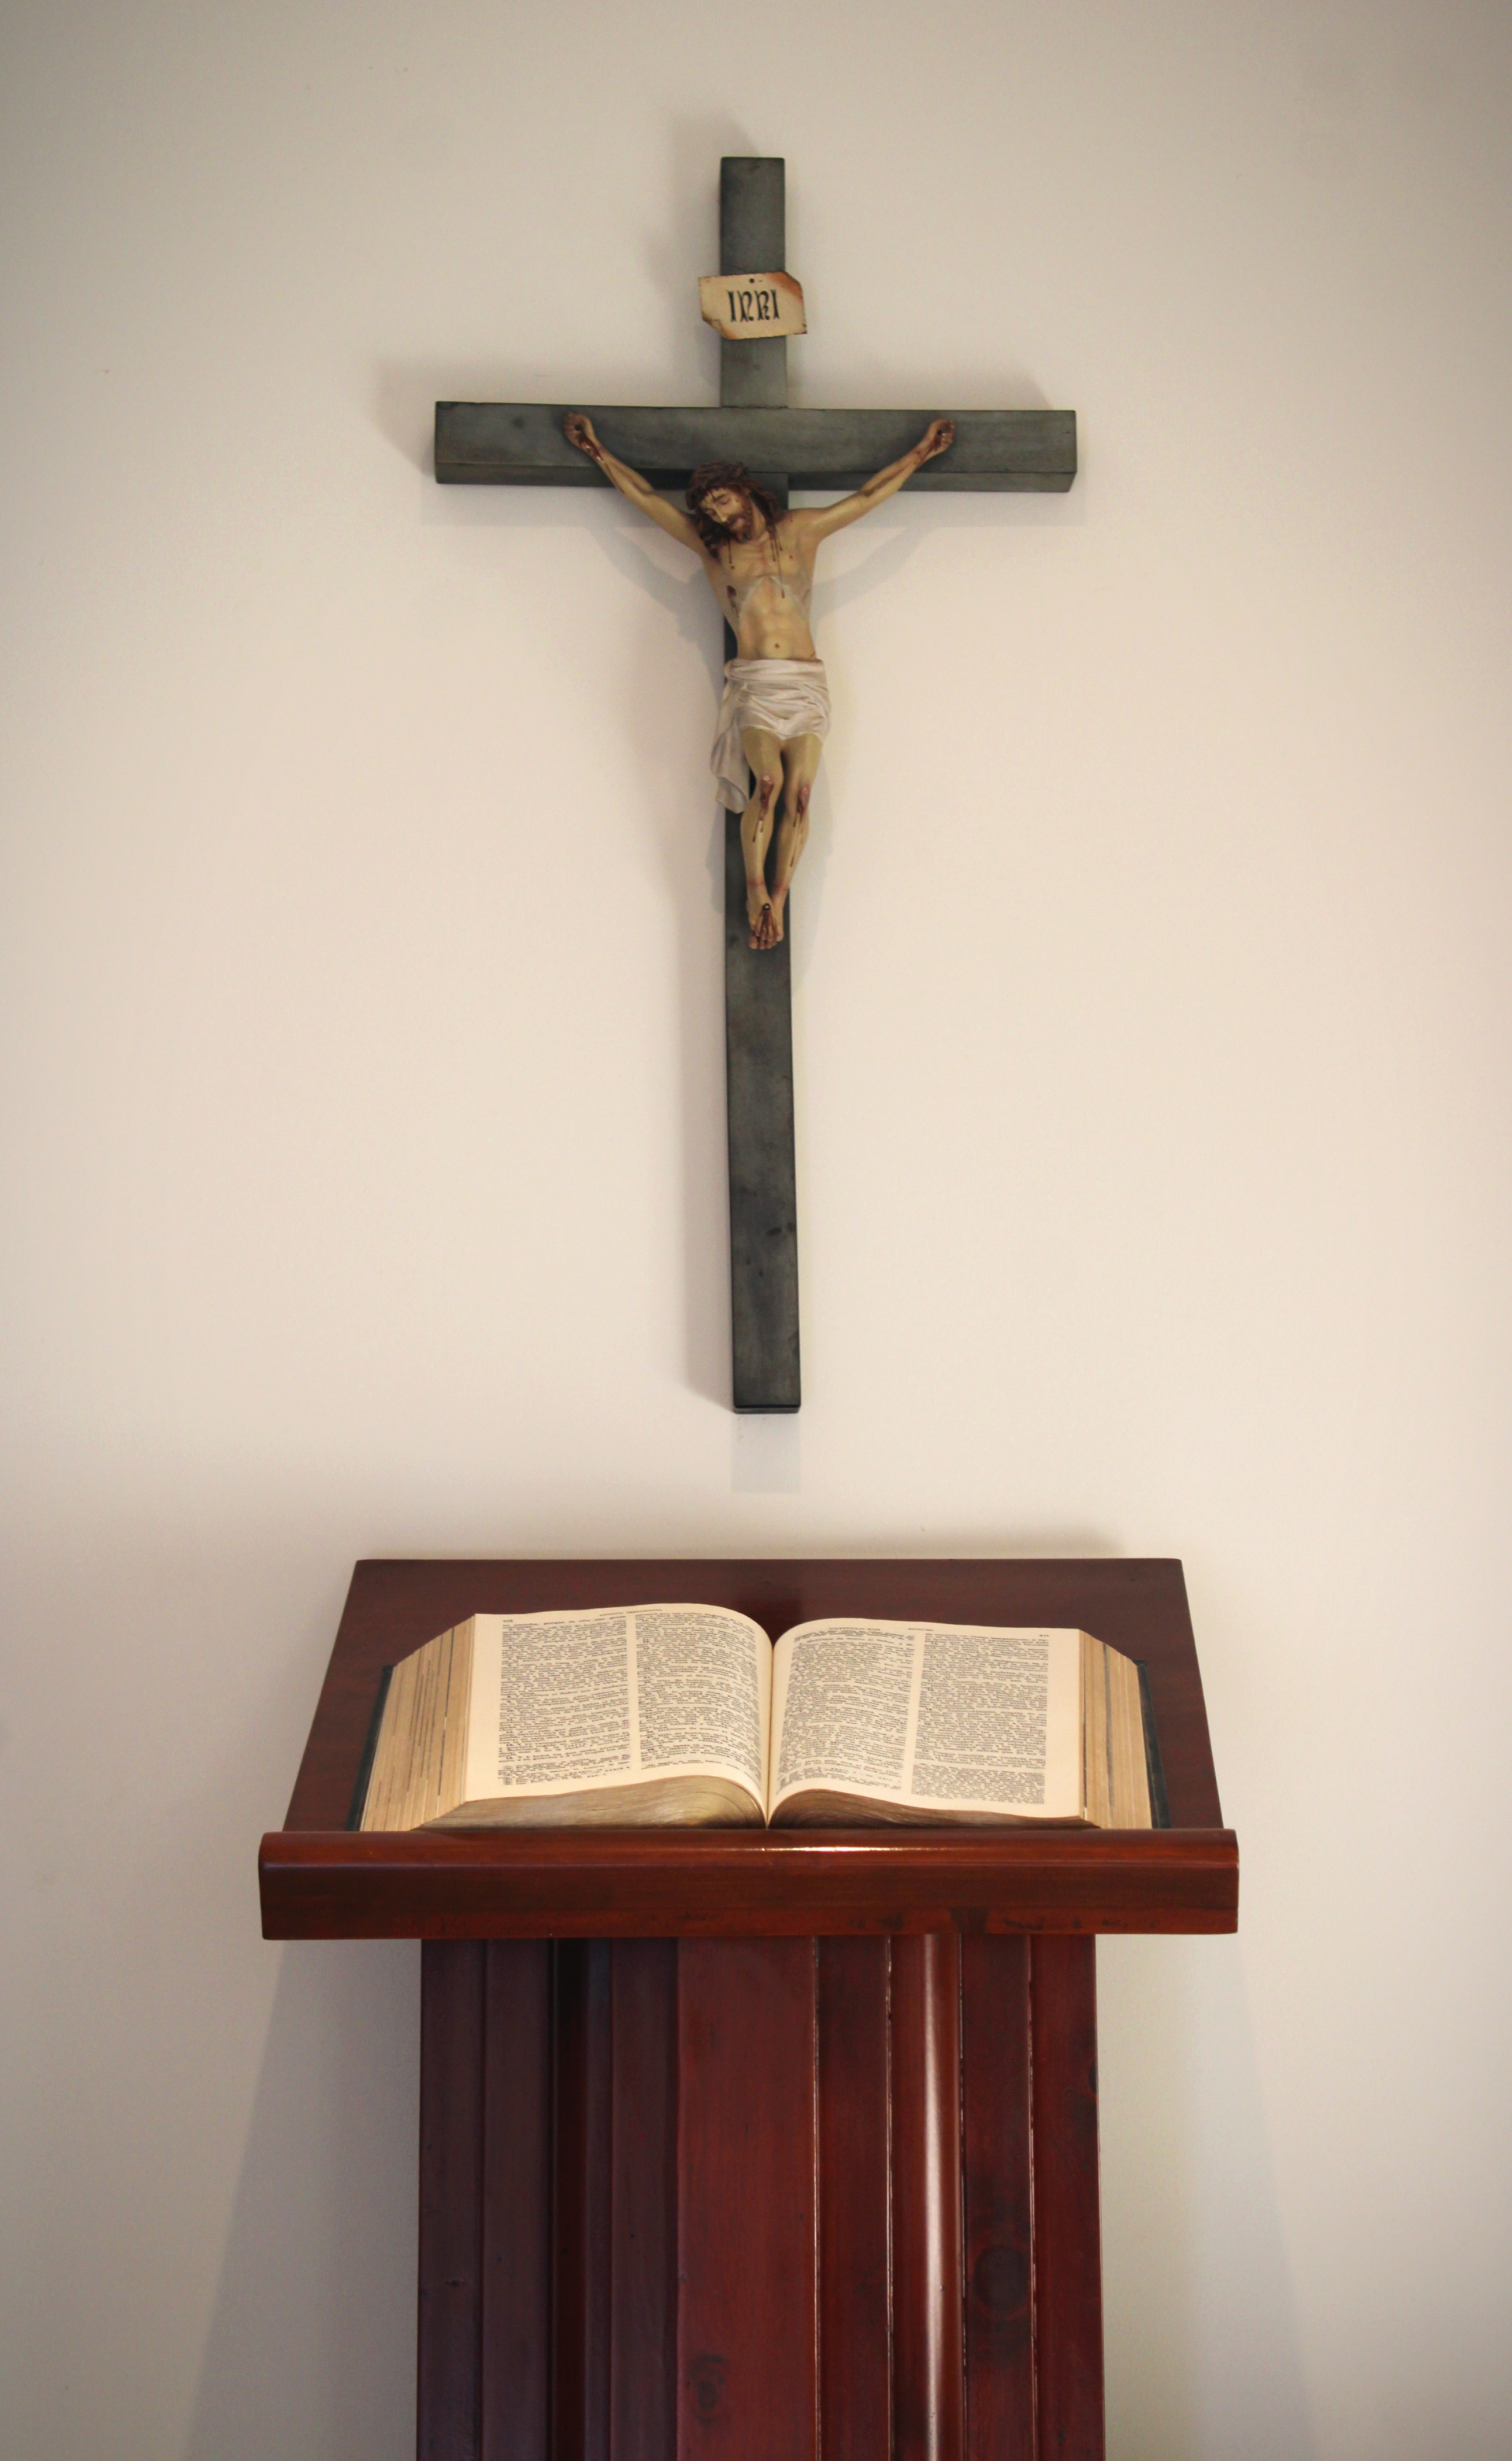 bible, crucifix, lectern, wall